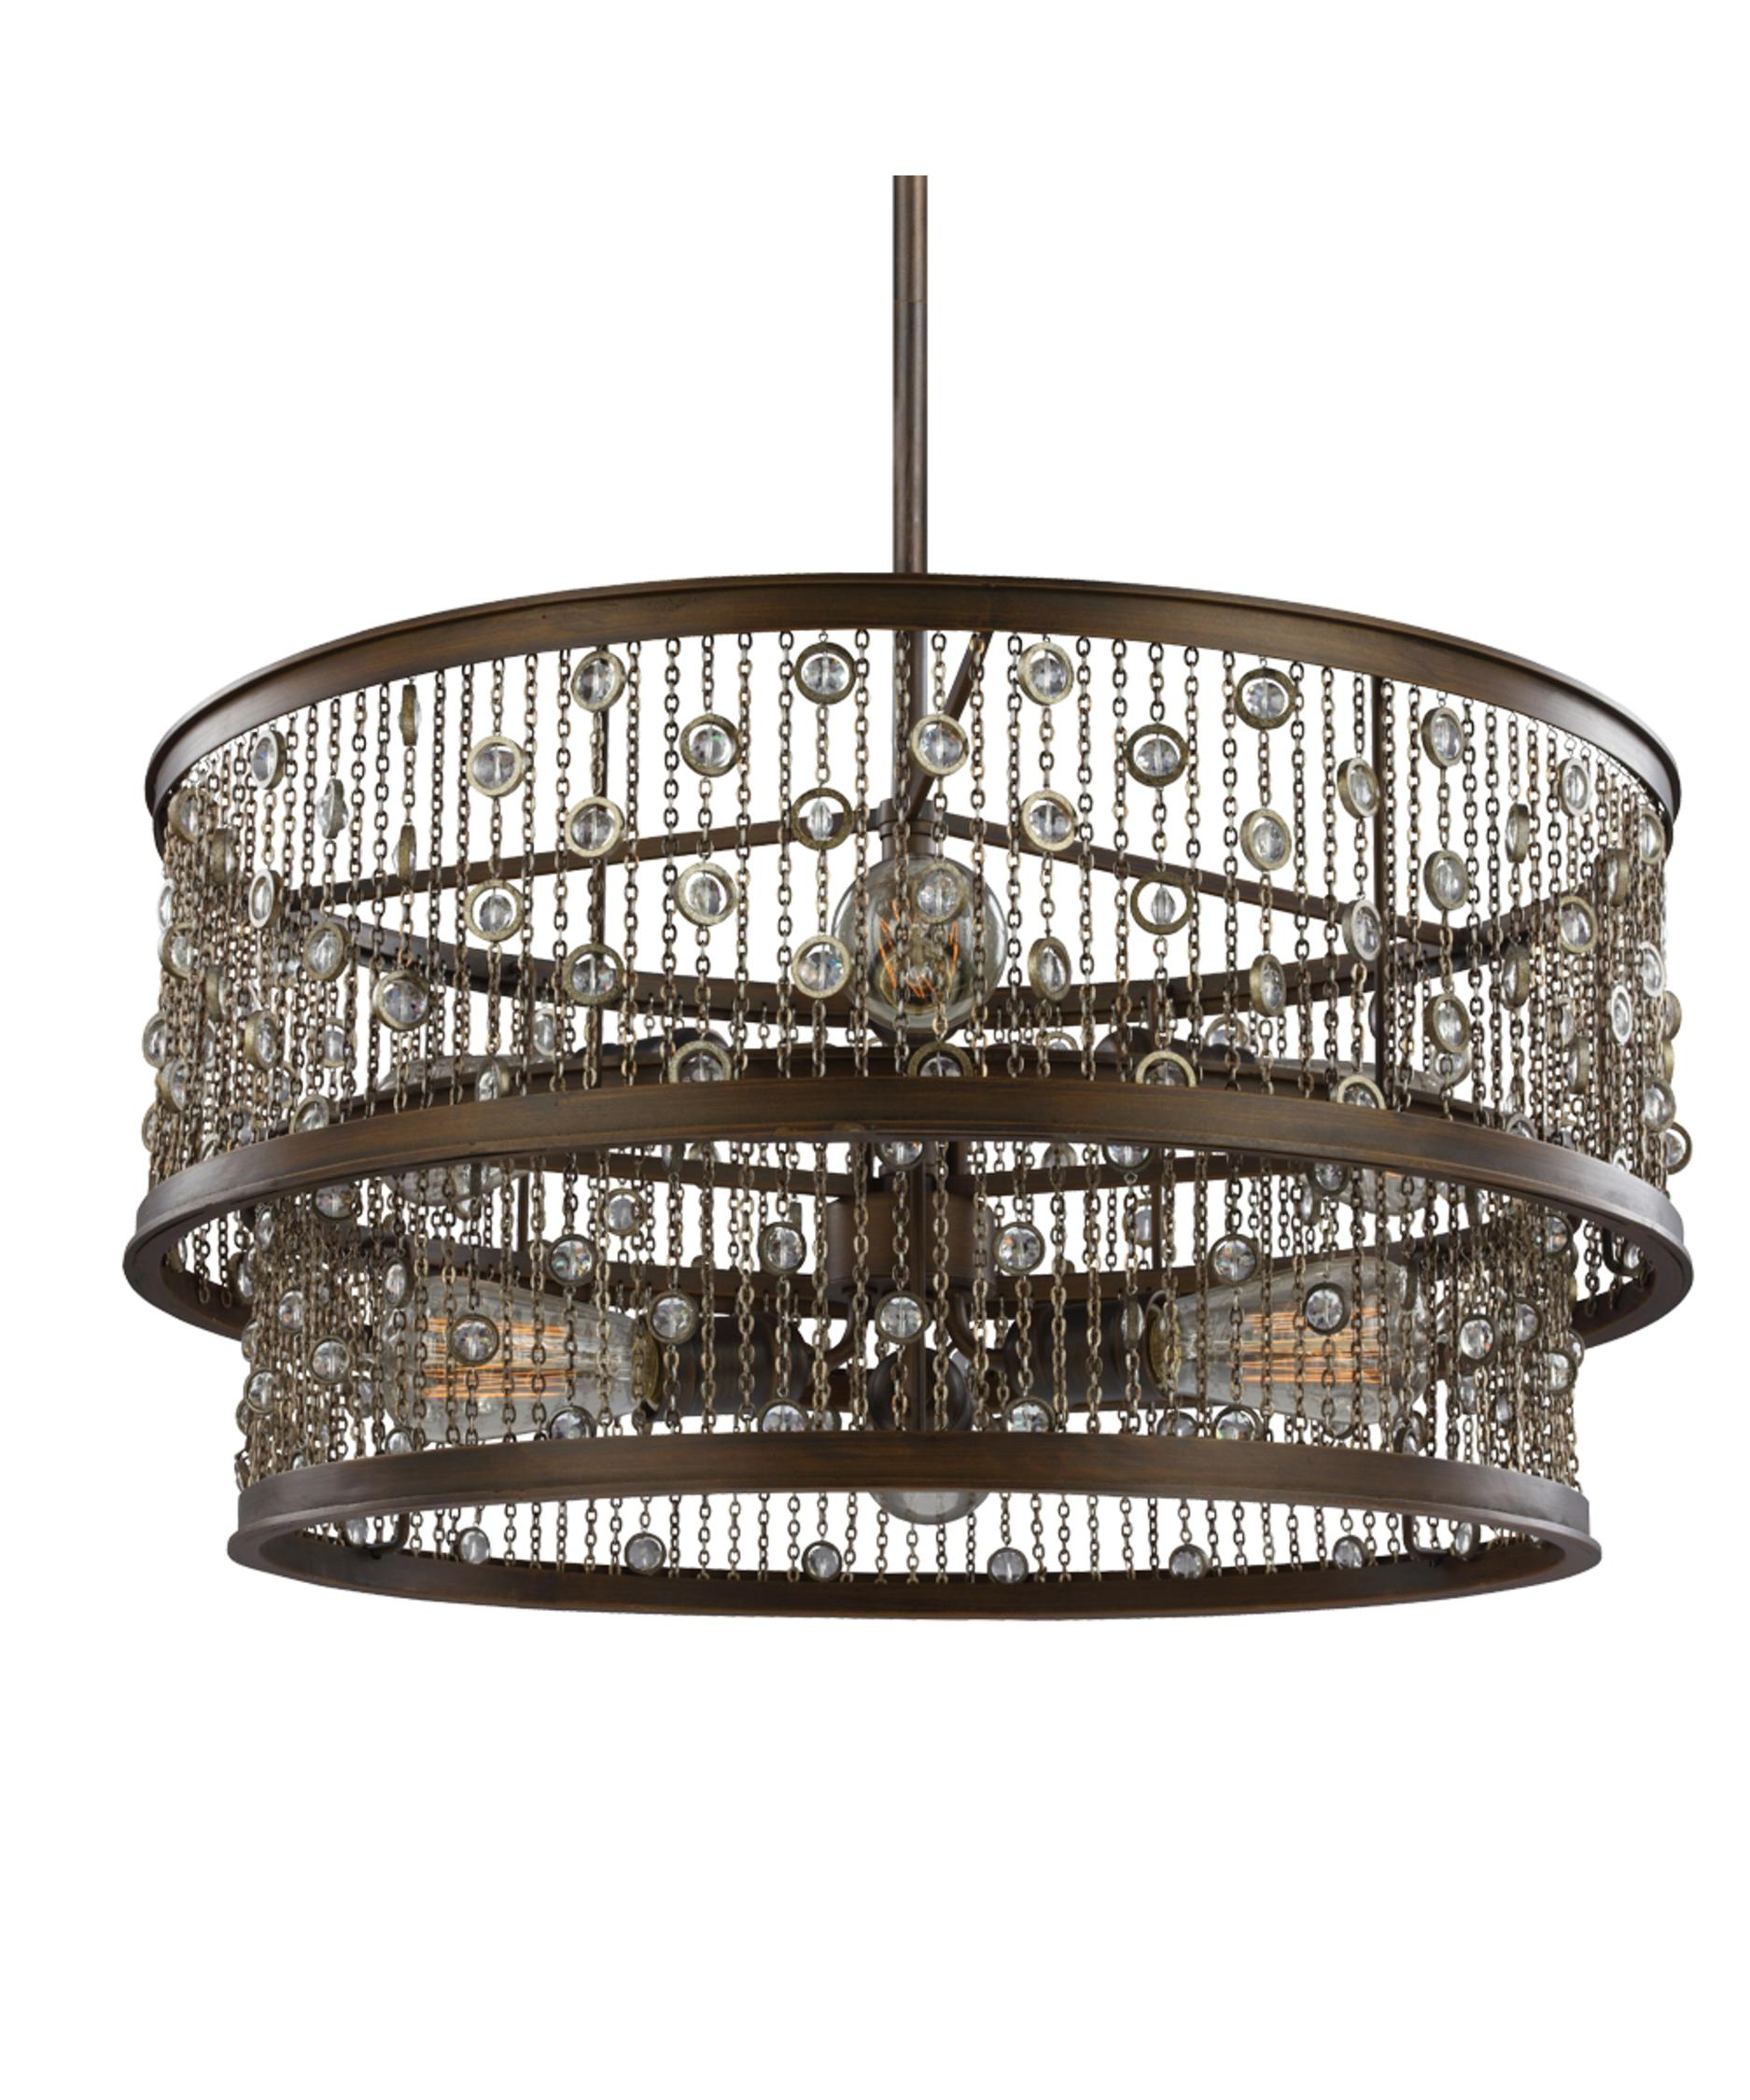 Murray Feiss Colorado Springs 24 Inch Wide 6 Light Large Pendant ...